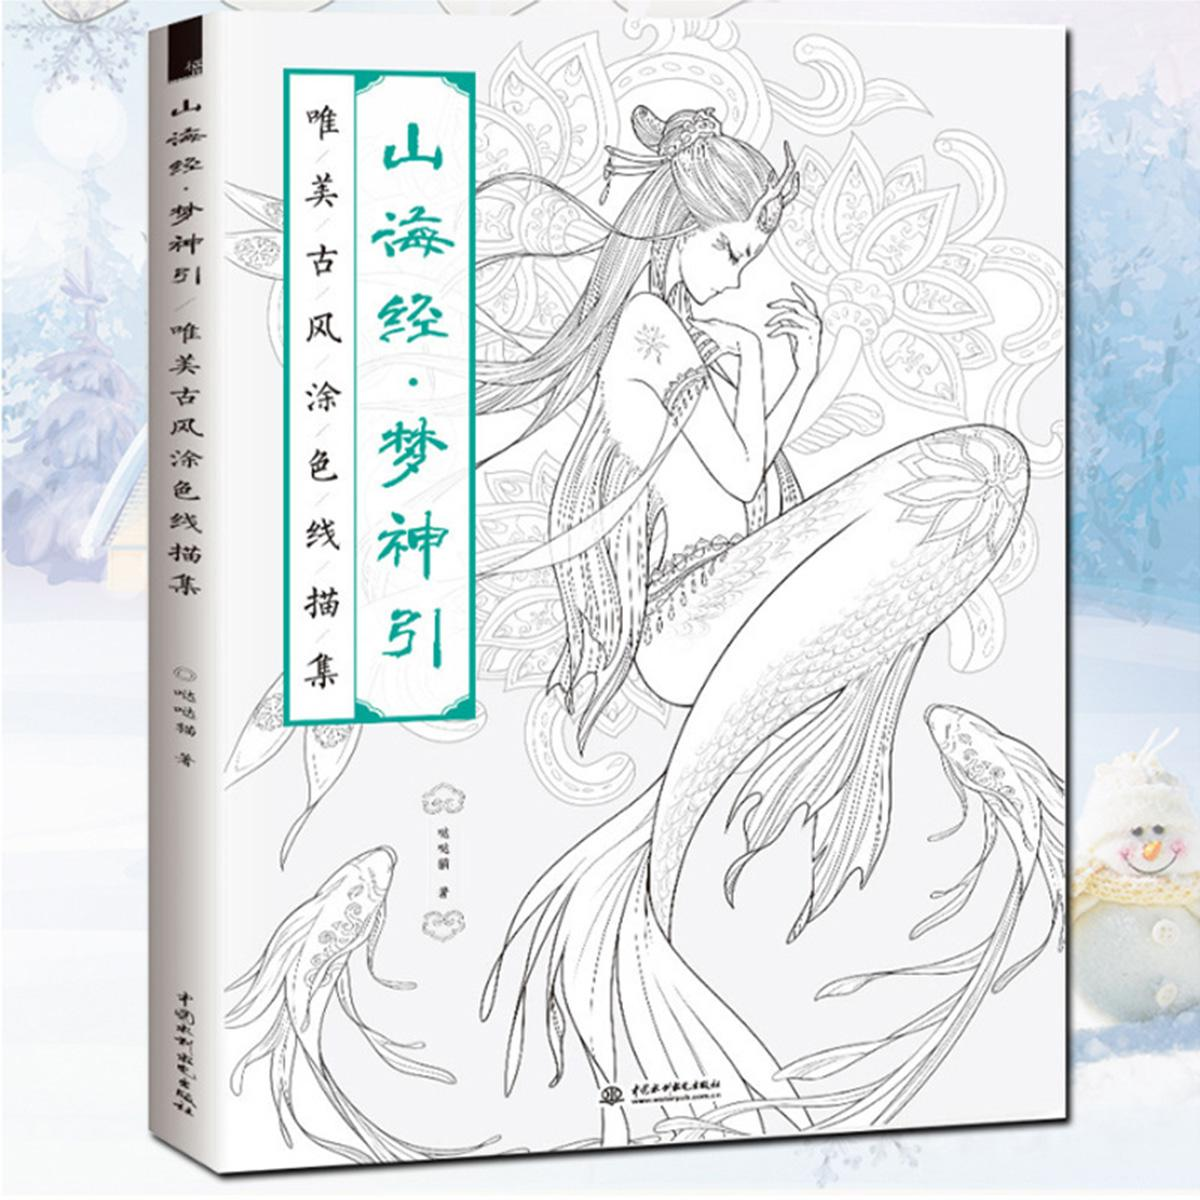 Chinese Ancient Figure Coloring Books Line Sketch Drawing Textbook Hand-painted Classical Adults Kids Painting Stress ReliefChinese Ancient Figure Coloring Books Line Sketch Drawing Textbook Hand-painted Classical Adults Kids Painting Stress Relief